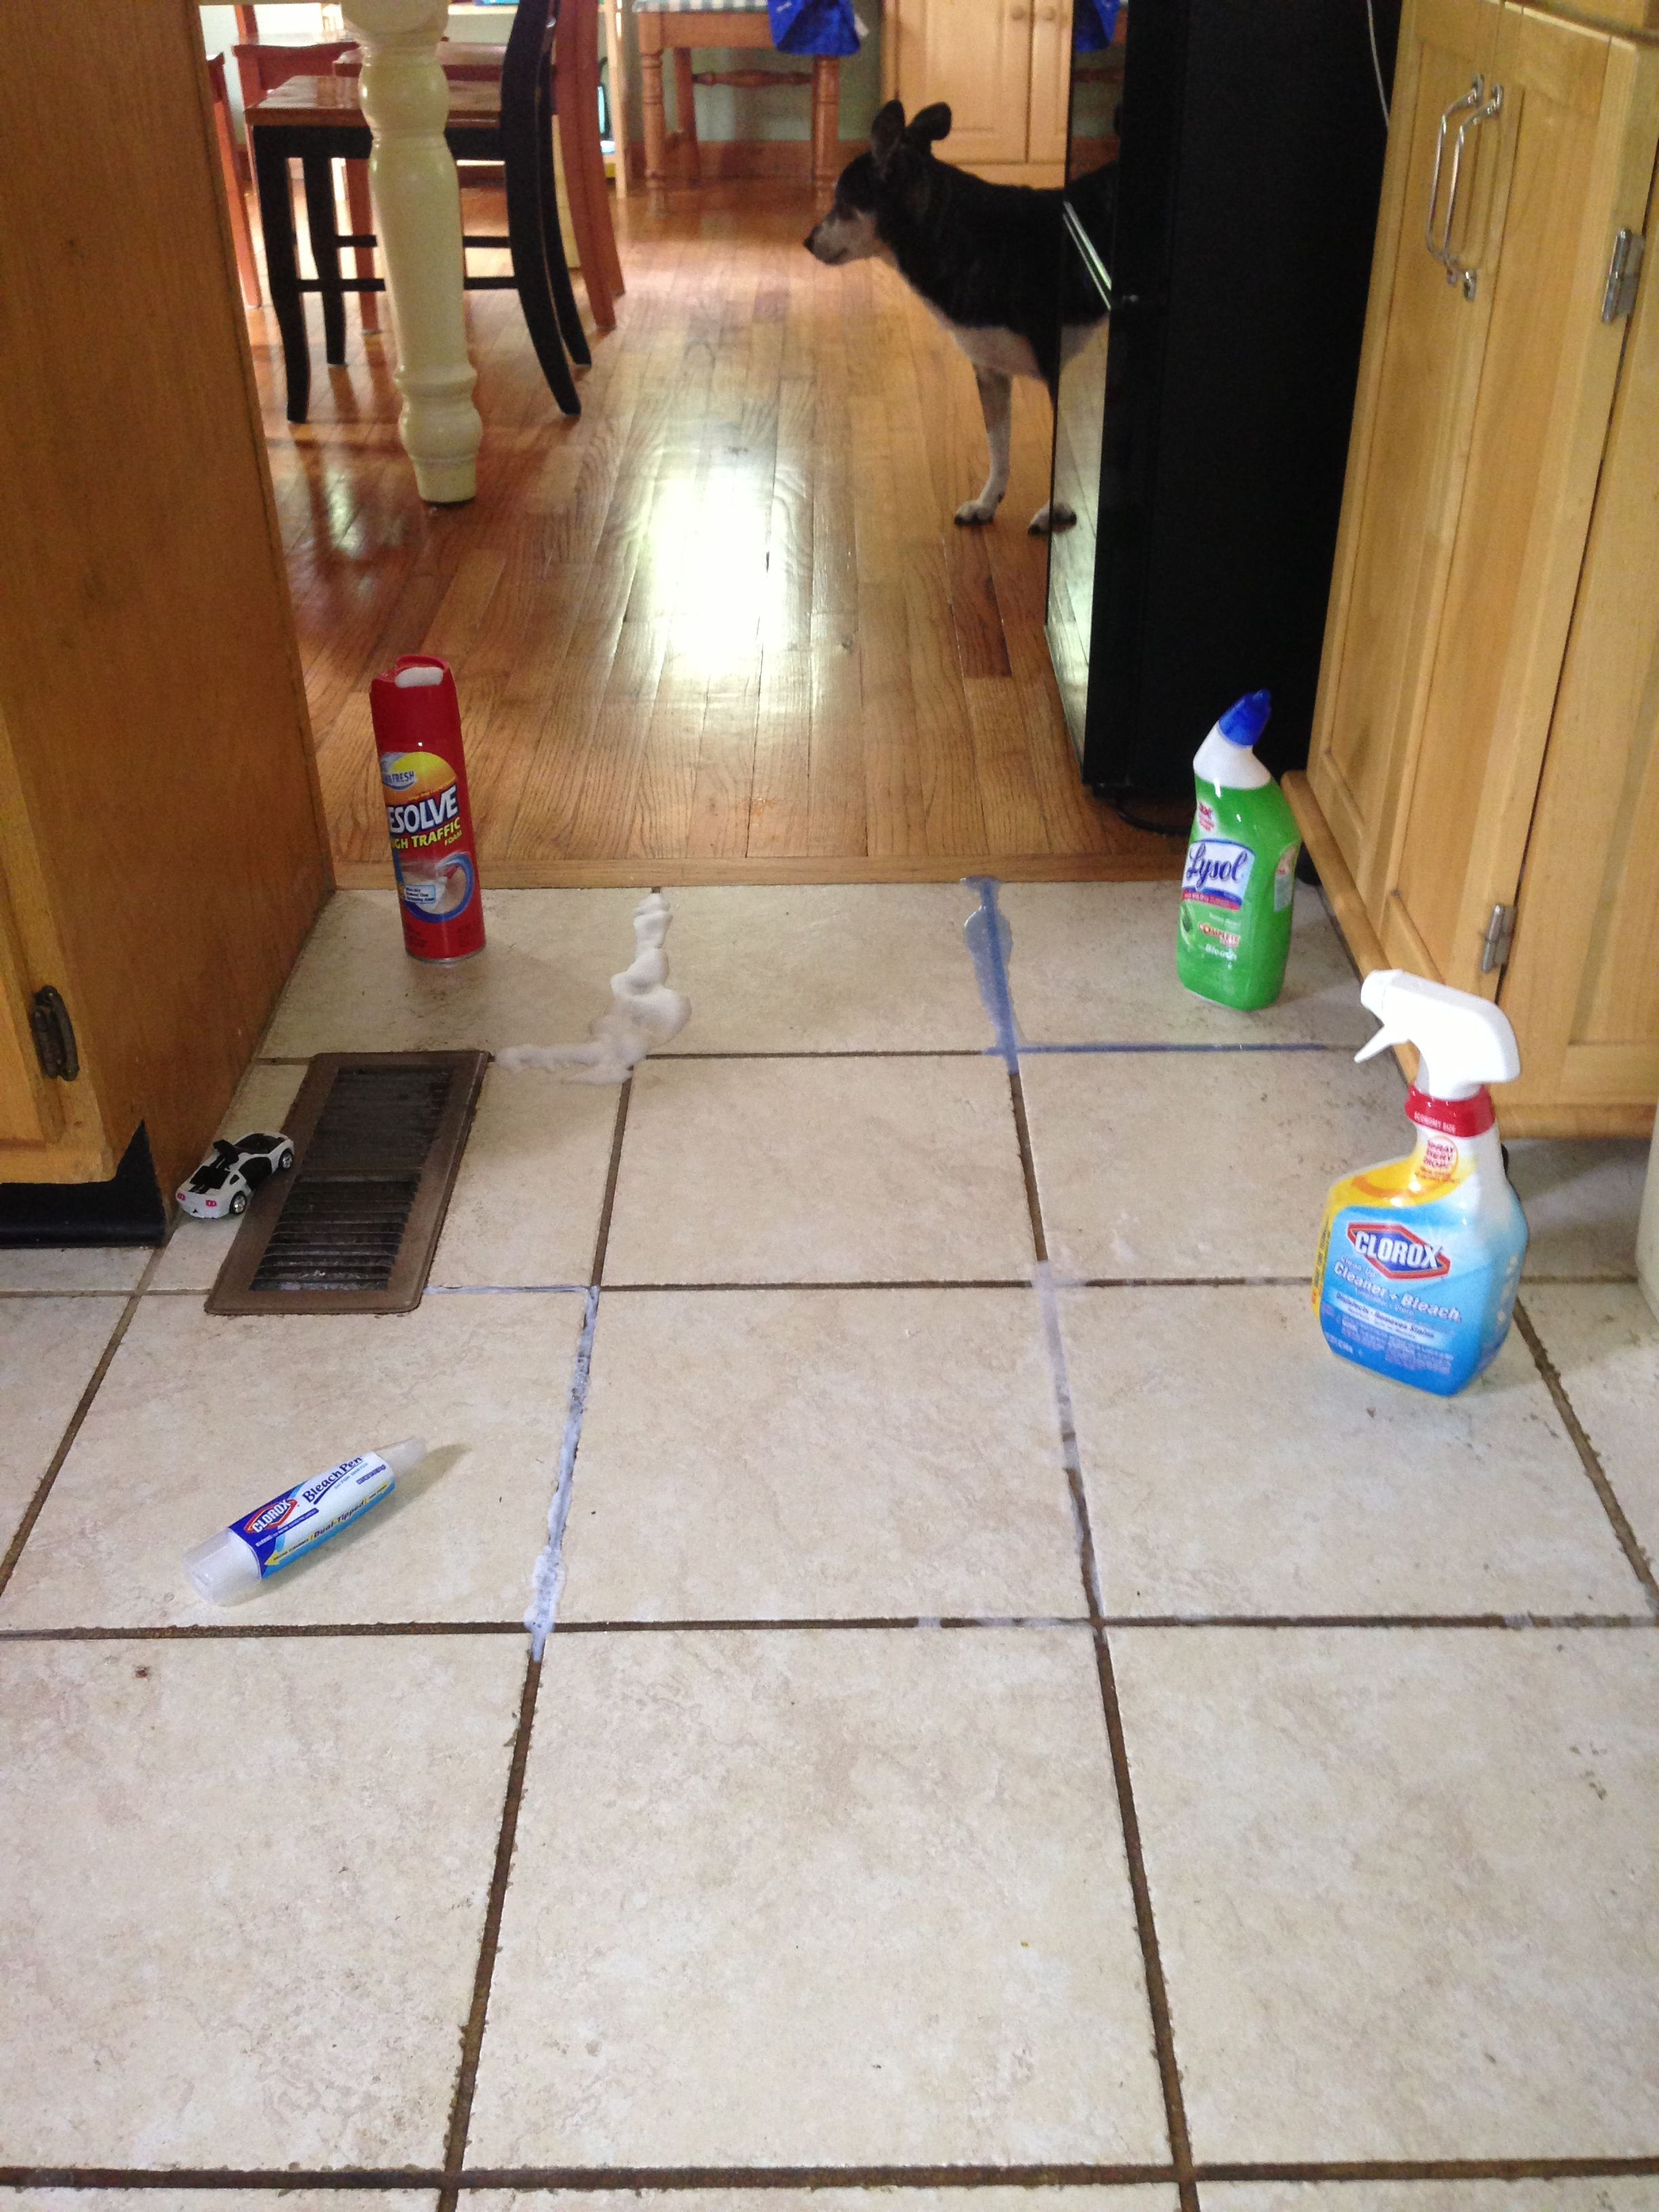 Kitchen Floor Grout Cleaner I Tried Four Methods To Clean The Grout On My Kitchen Floor Lysol